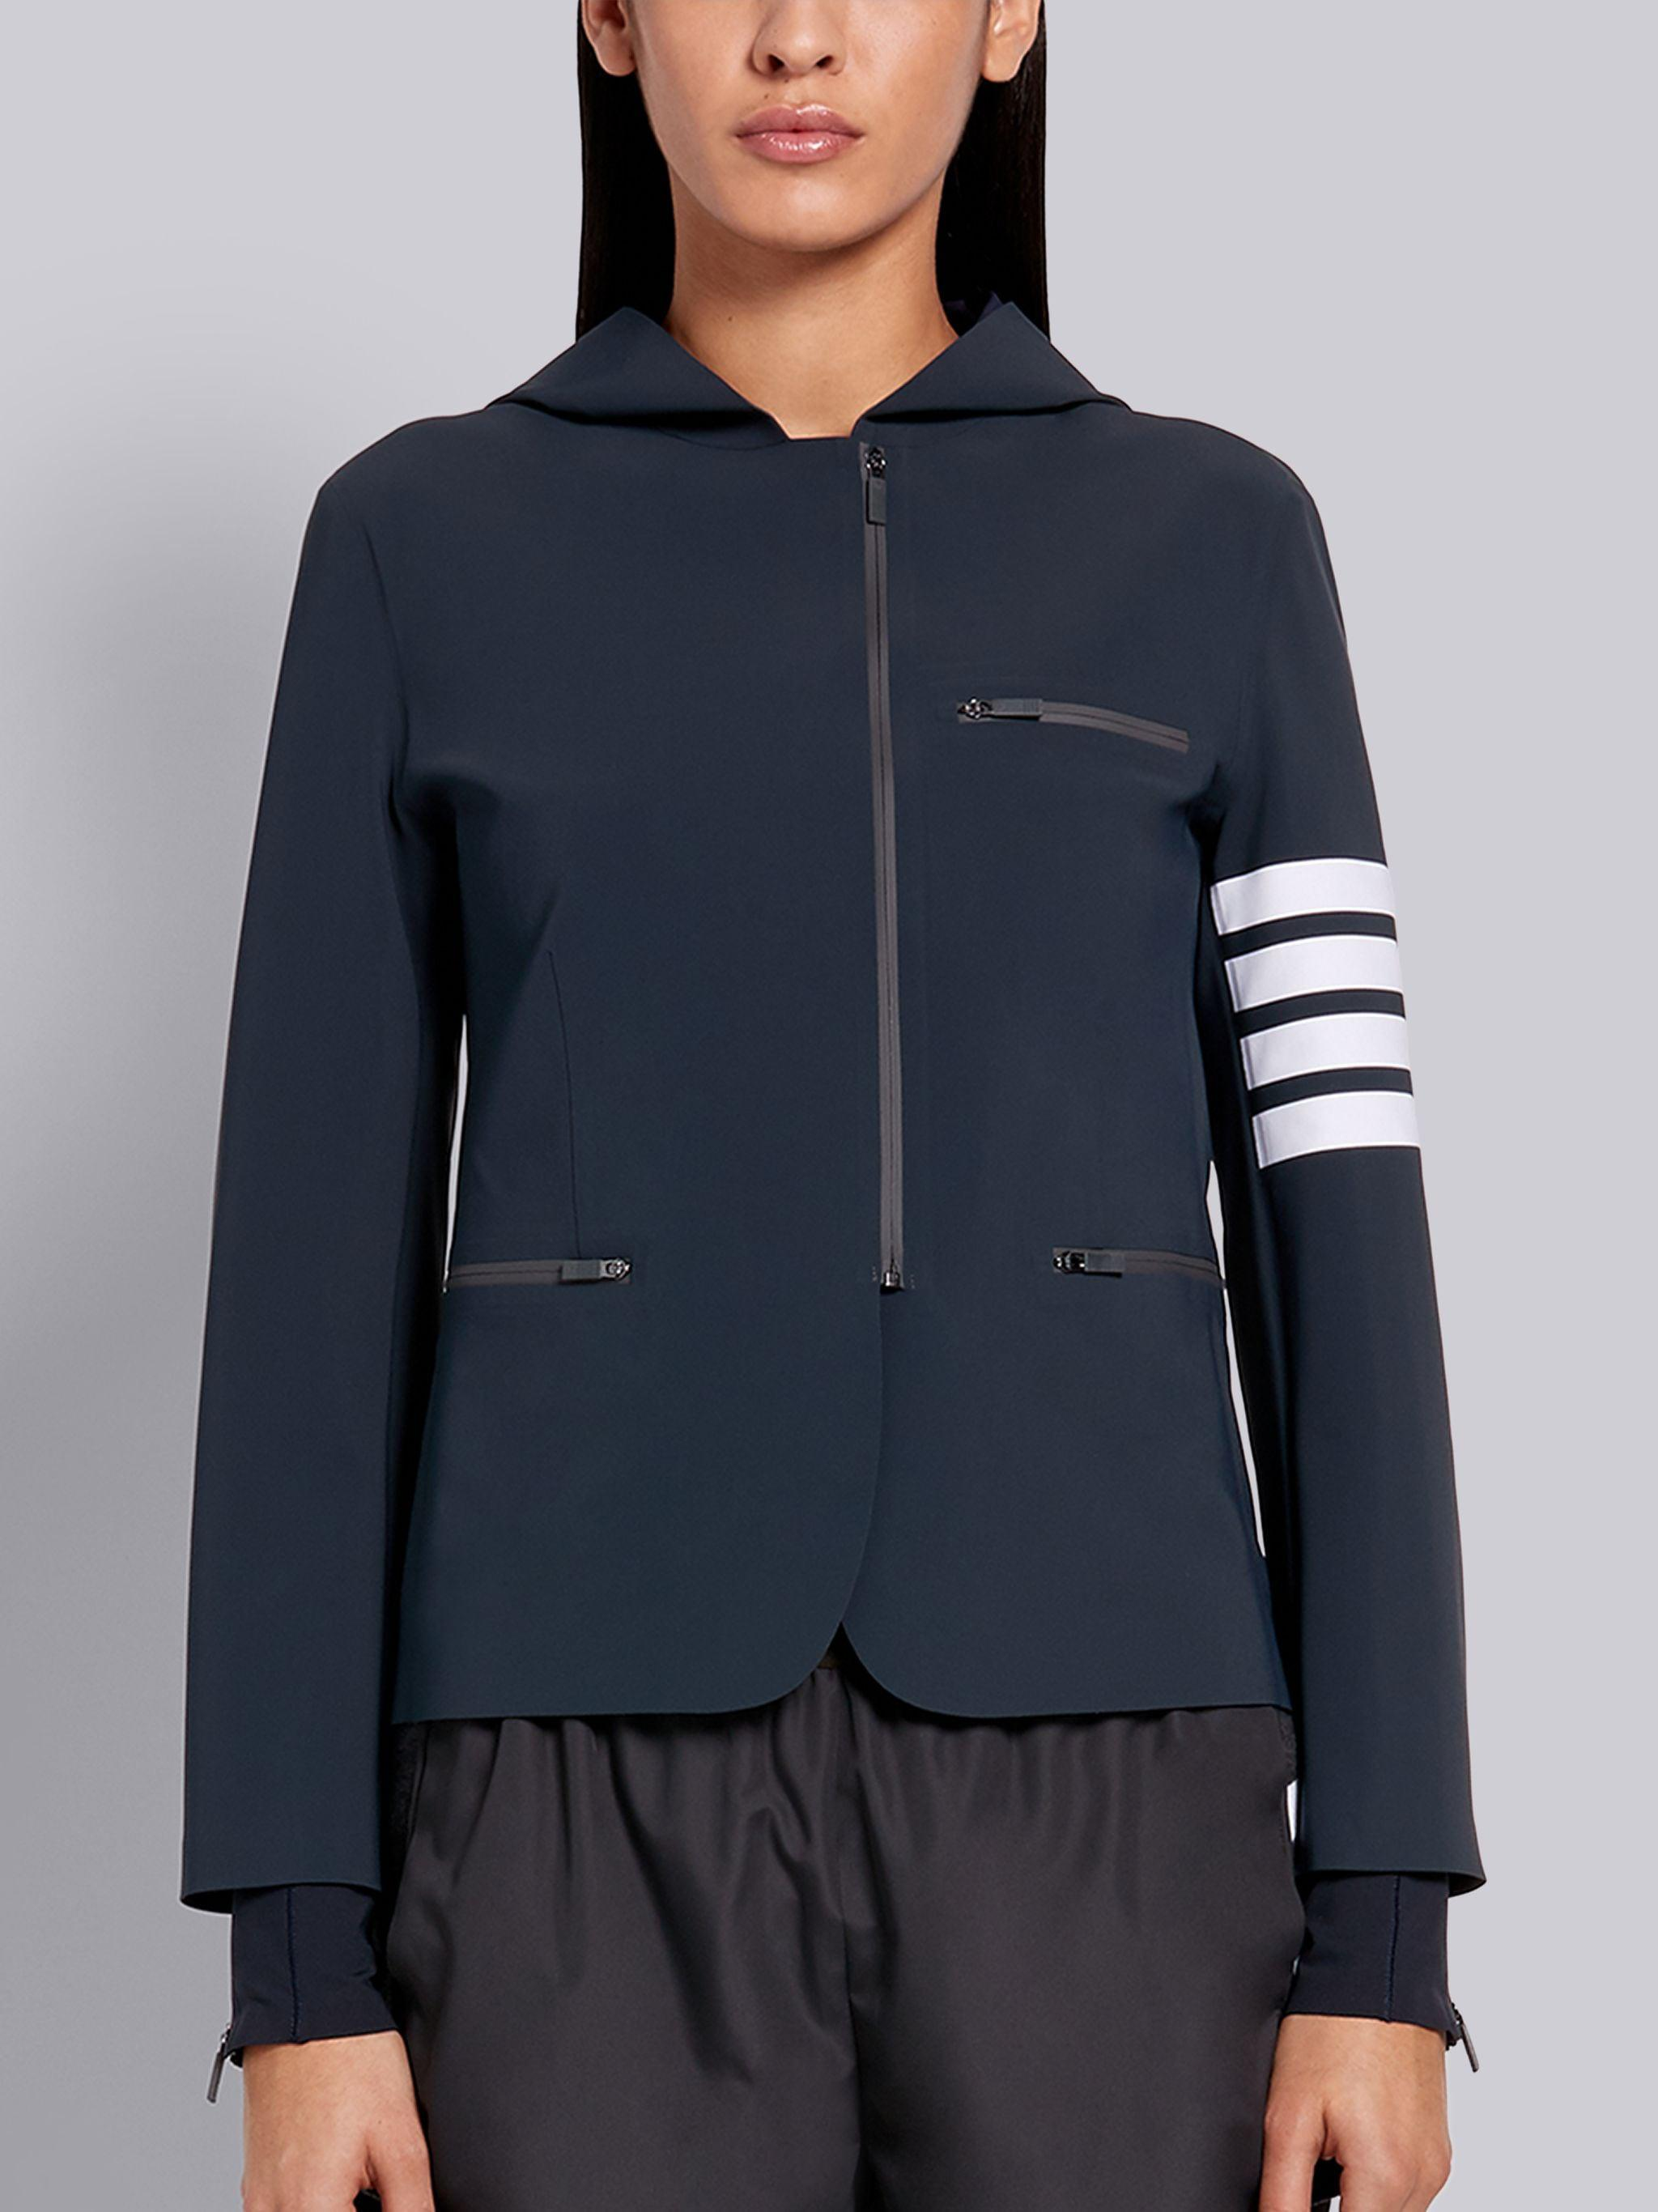 Charcoal Compression Tech Hooded 4-bar Zip-up Jacket